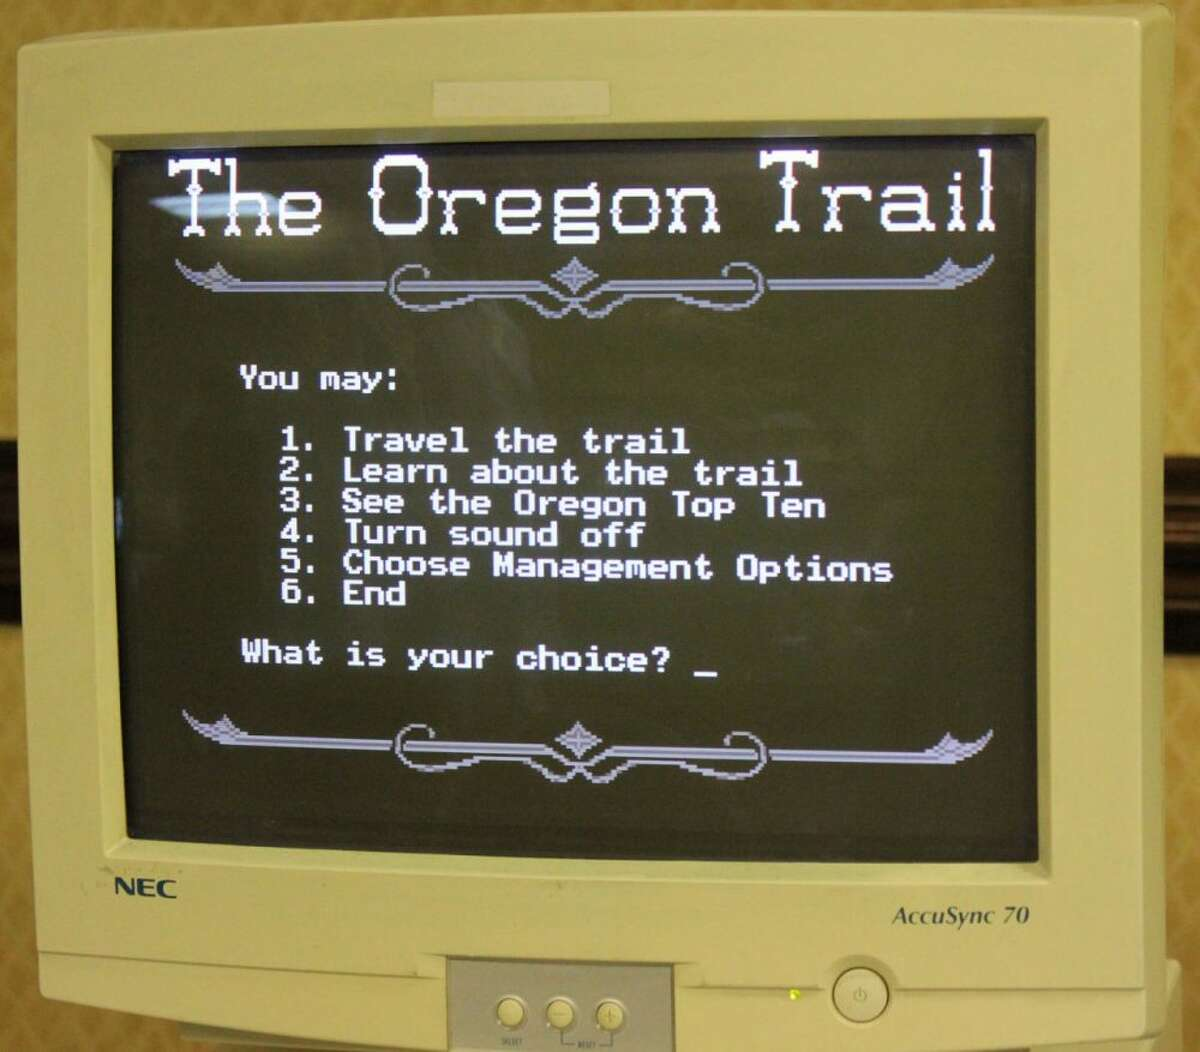 """Since the """"Oregon Trail"""" game's 1971 inception, more than 65 million copies have been sold, and it is considered to be the most widely distributed educational game of all time. Even 48 years later, nostalgic adults continue to scour the Internet for versions of Oregon Trail that can be played in-browser."""